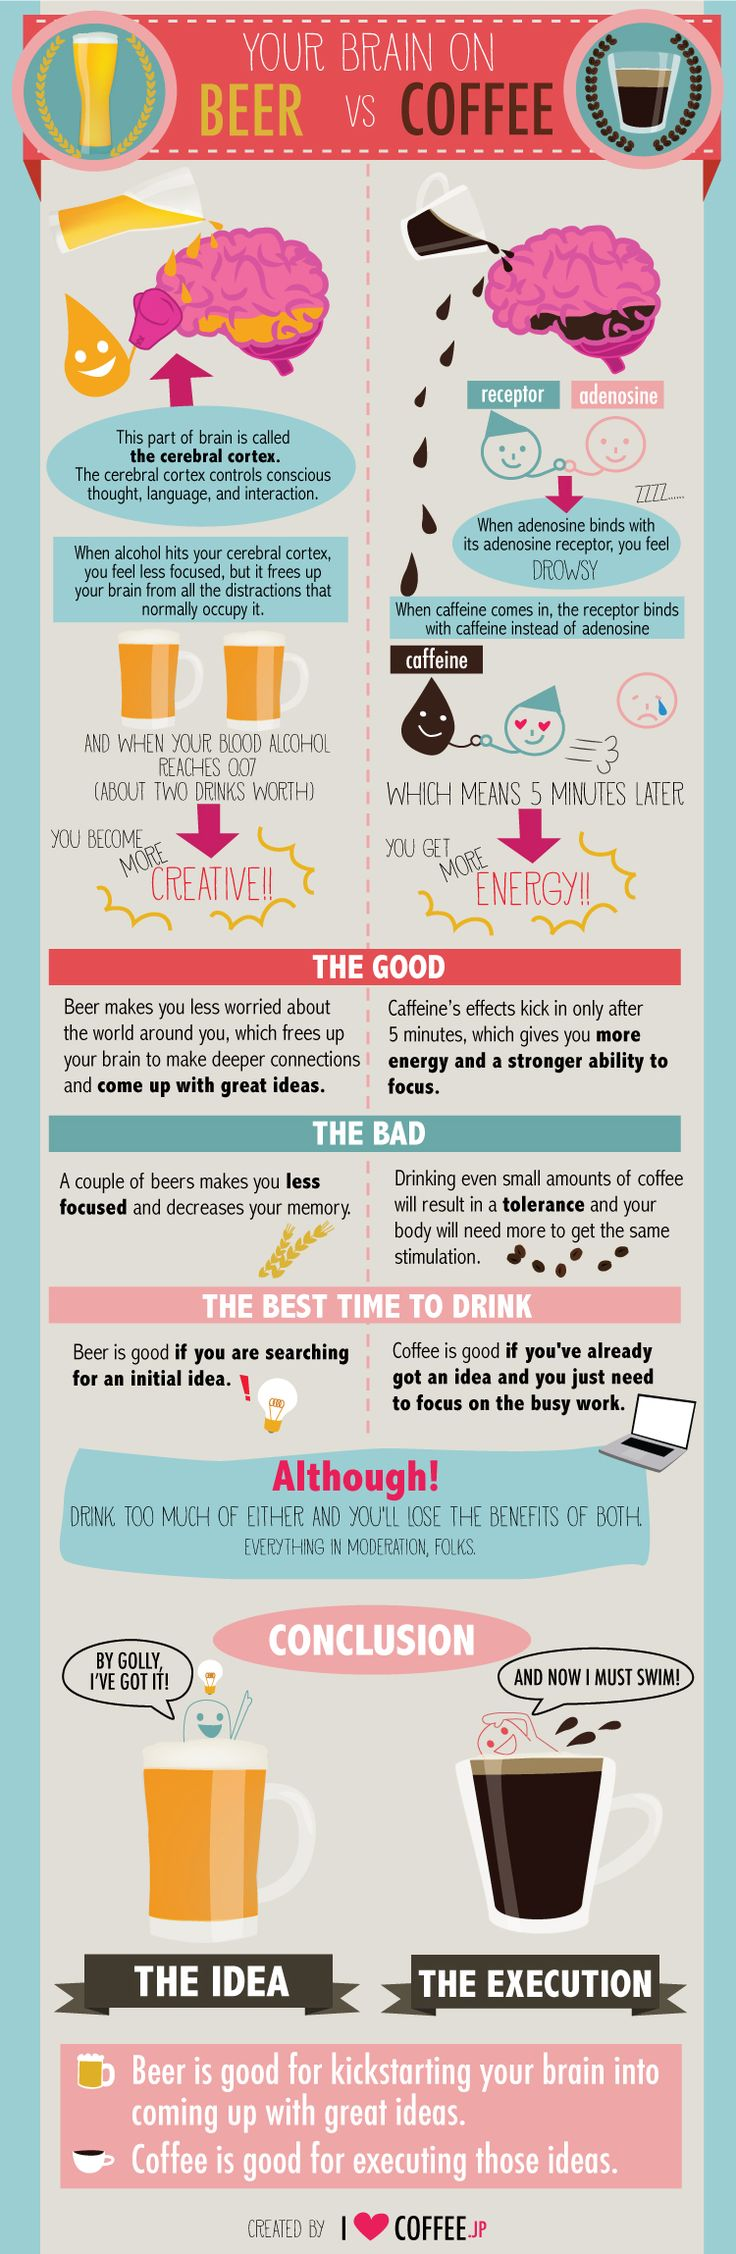 73 best coffee infographics images on pinterest | coffee drinks